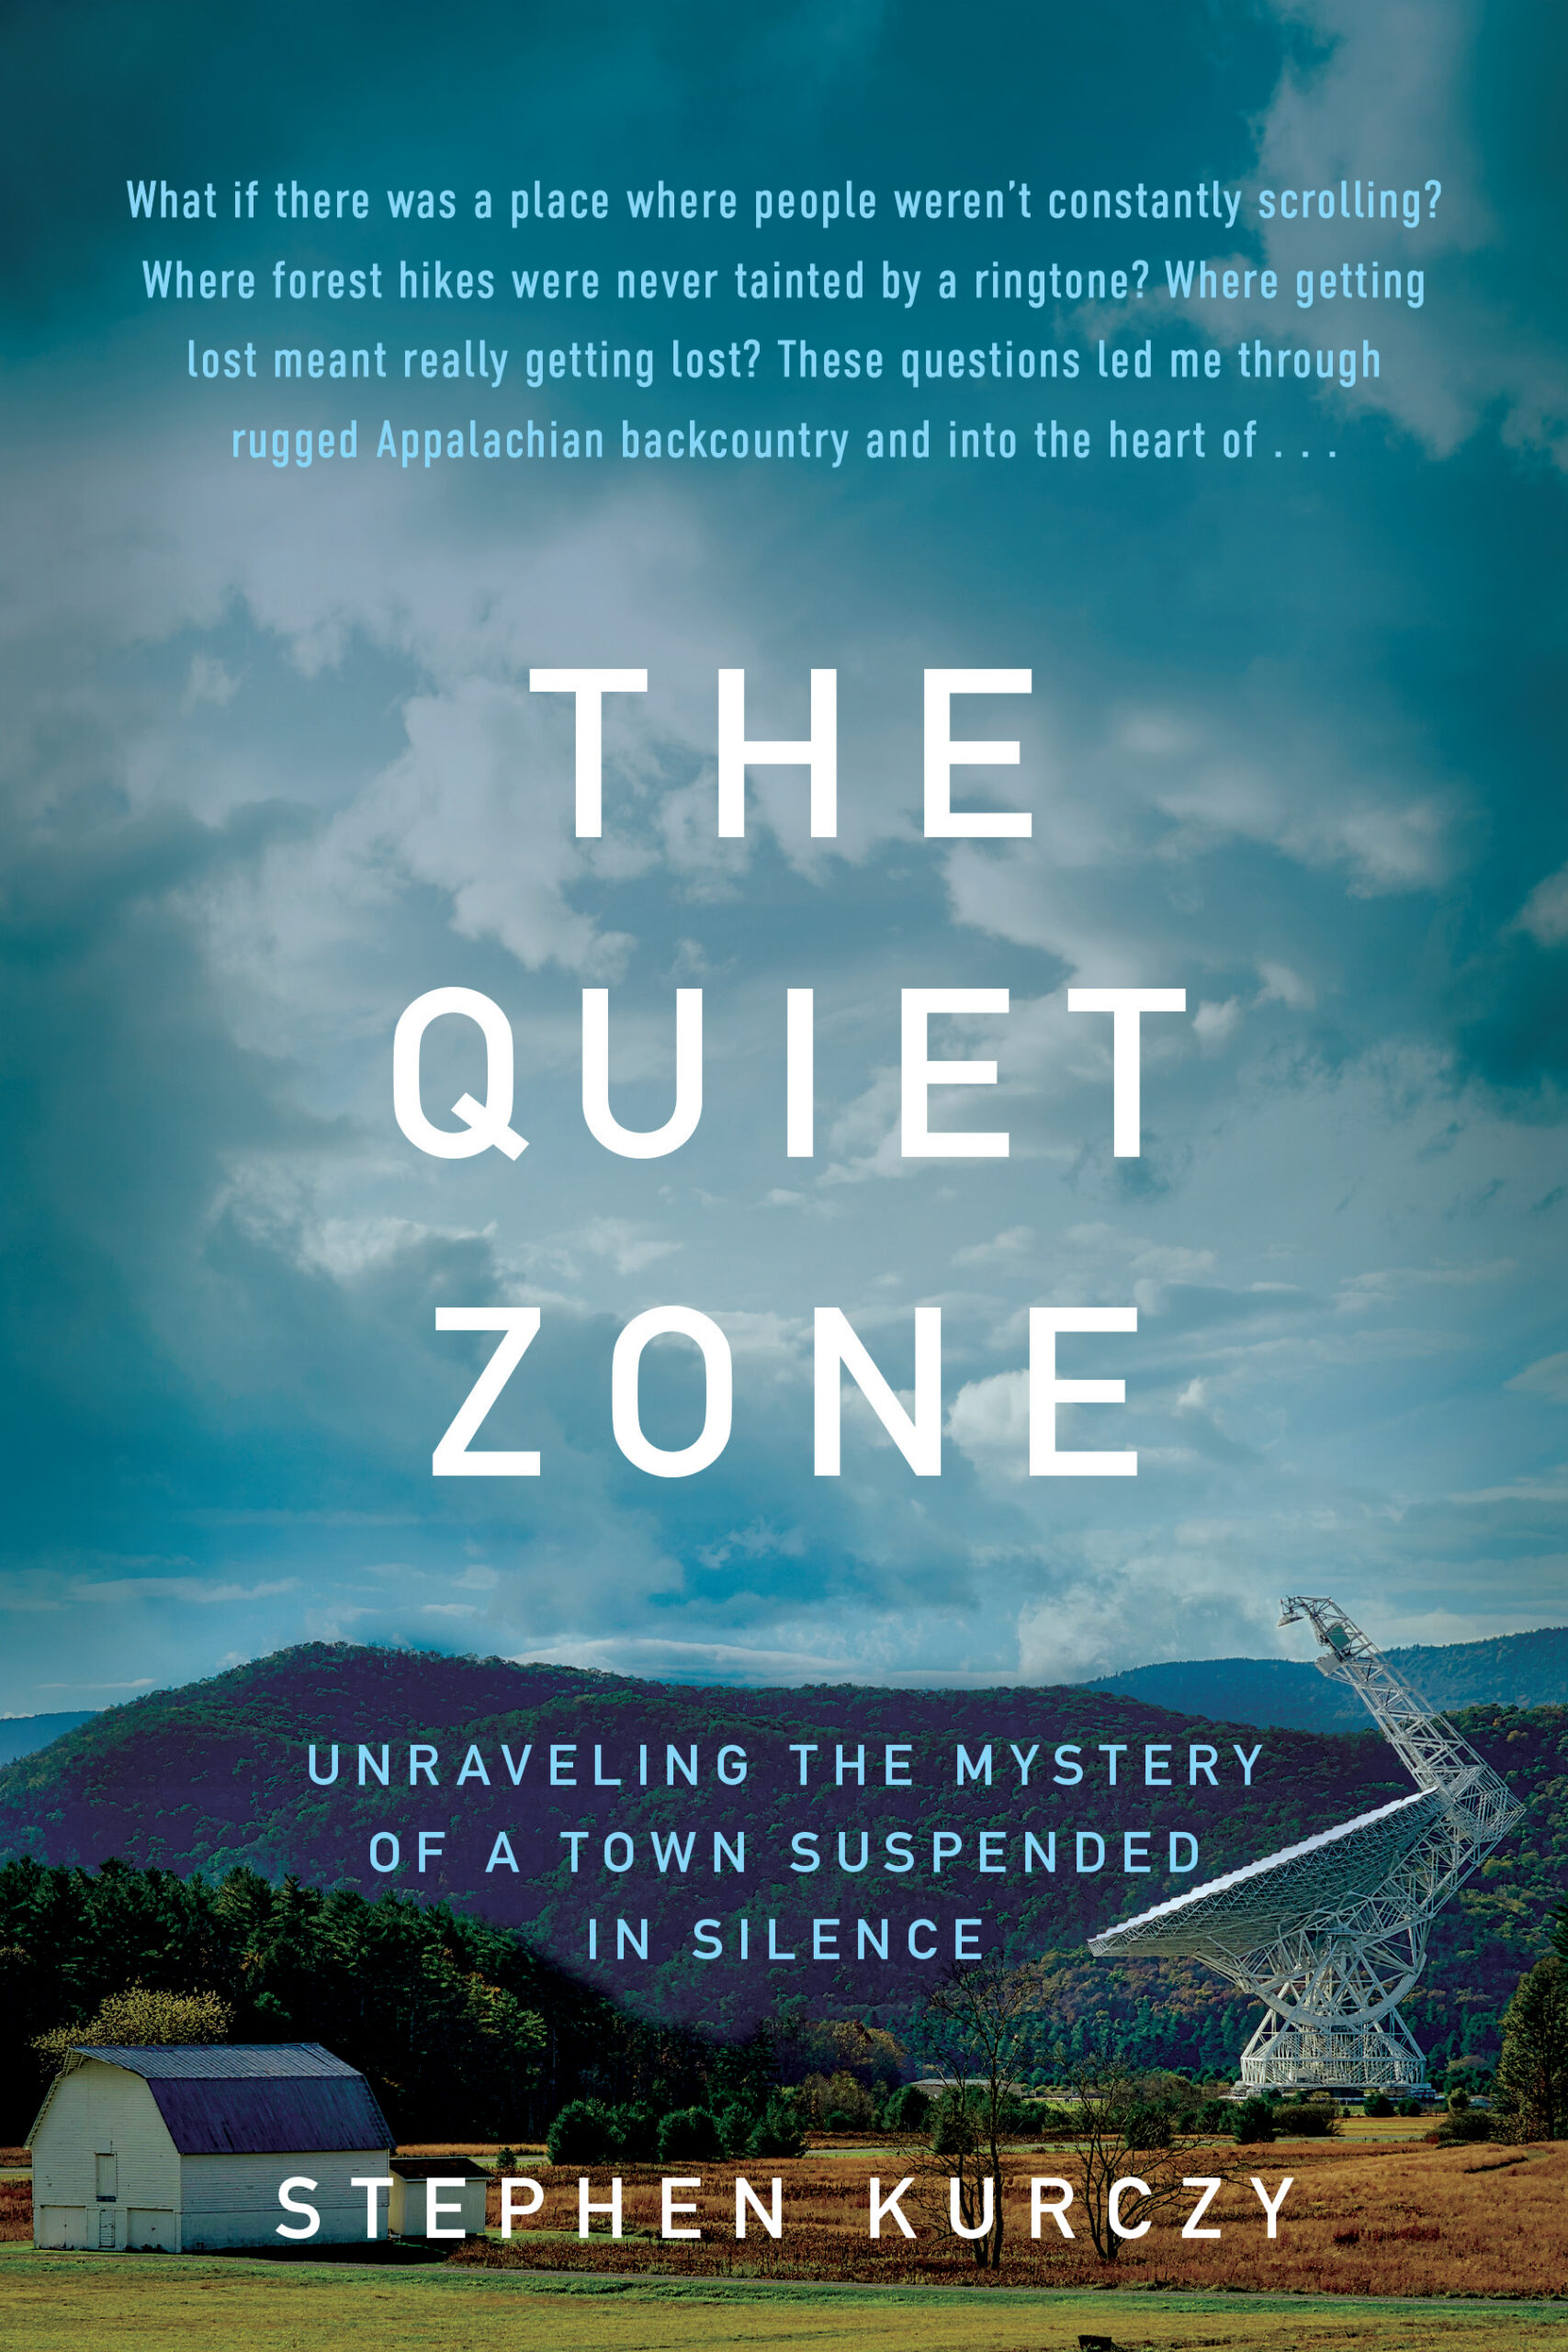 Stephen Kurczy, The Quiet Zone: Unraveling the Mystery of a Town Suspended in Silence